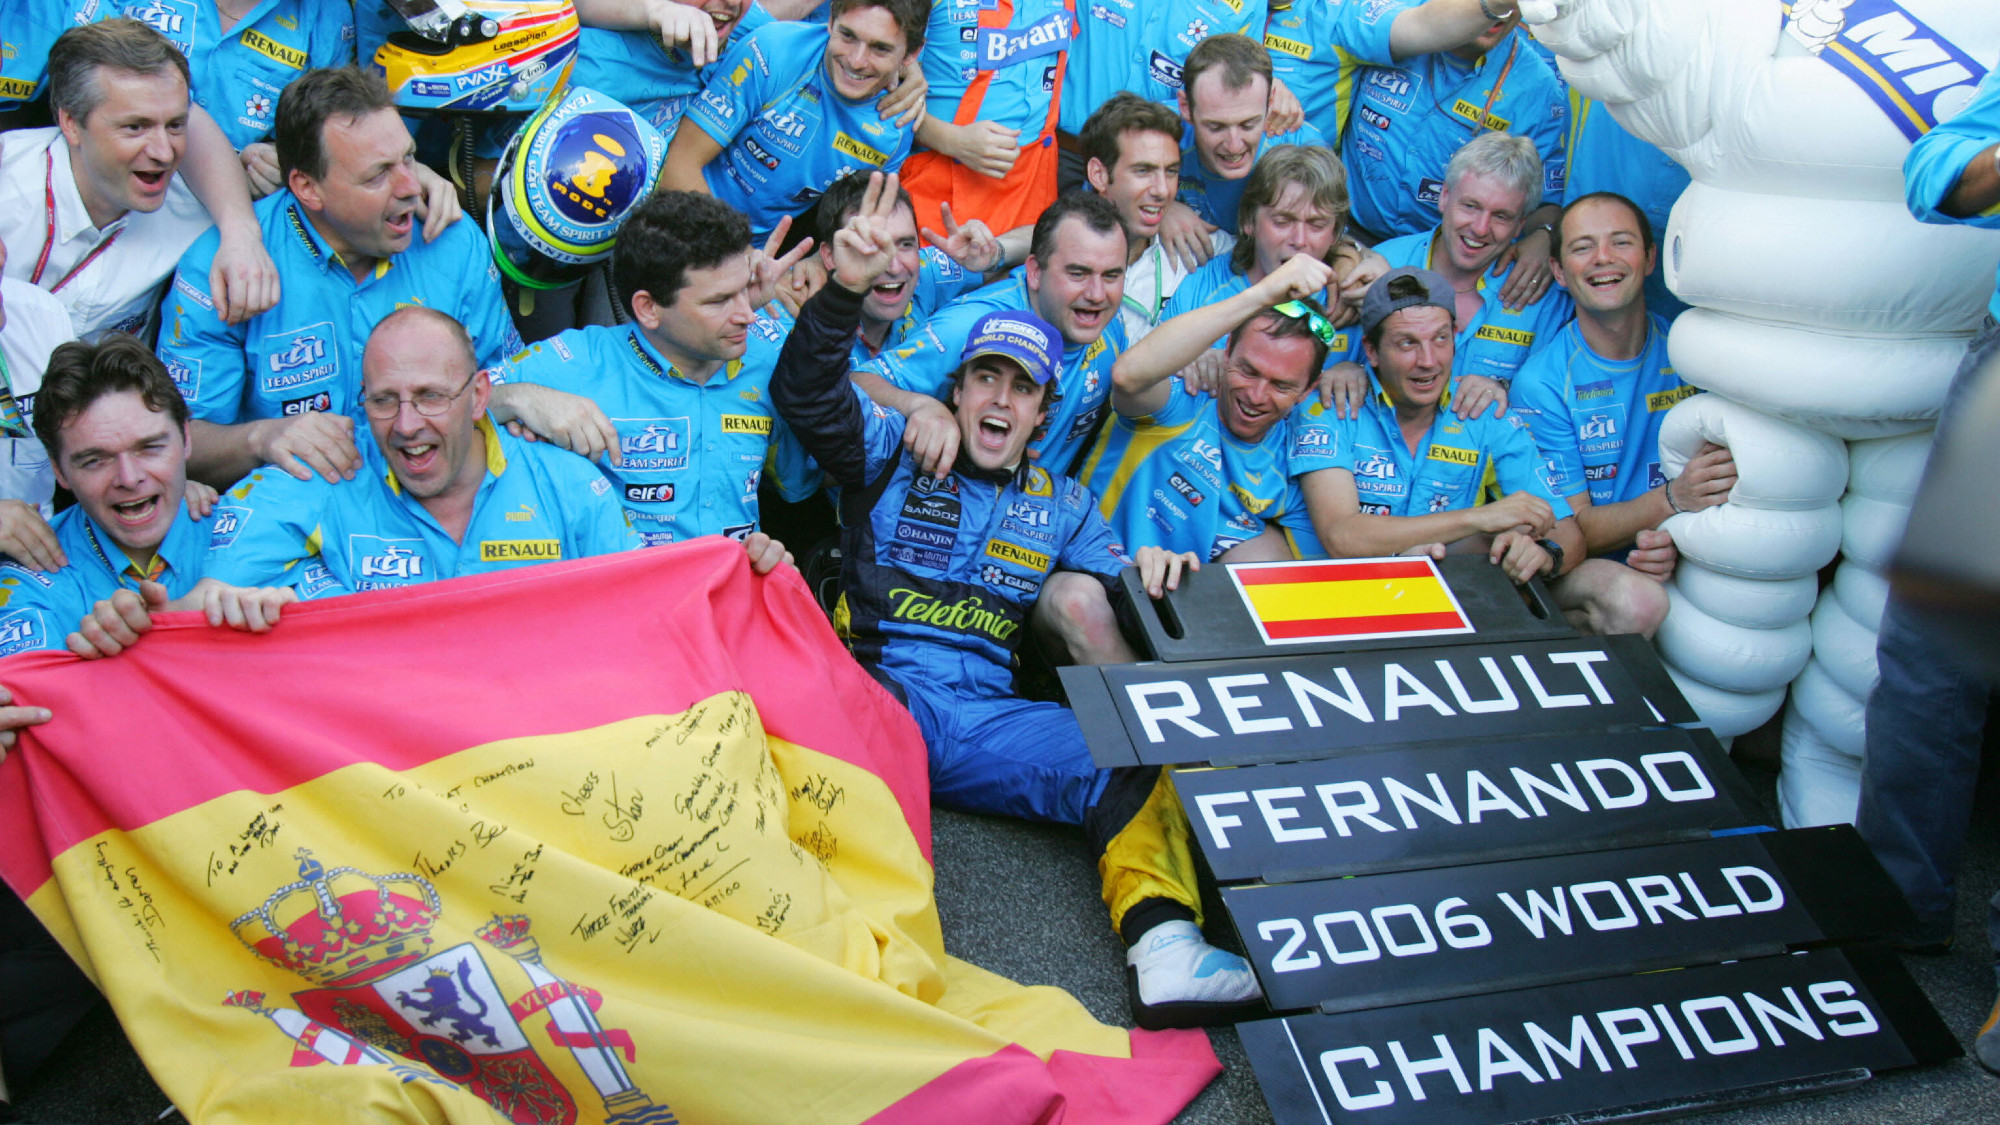 The Alonso-Renault relationship: championships and controversy